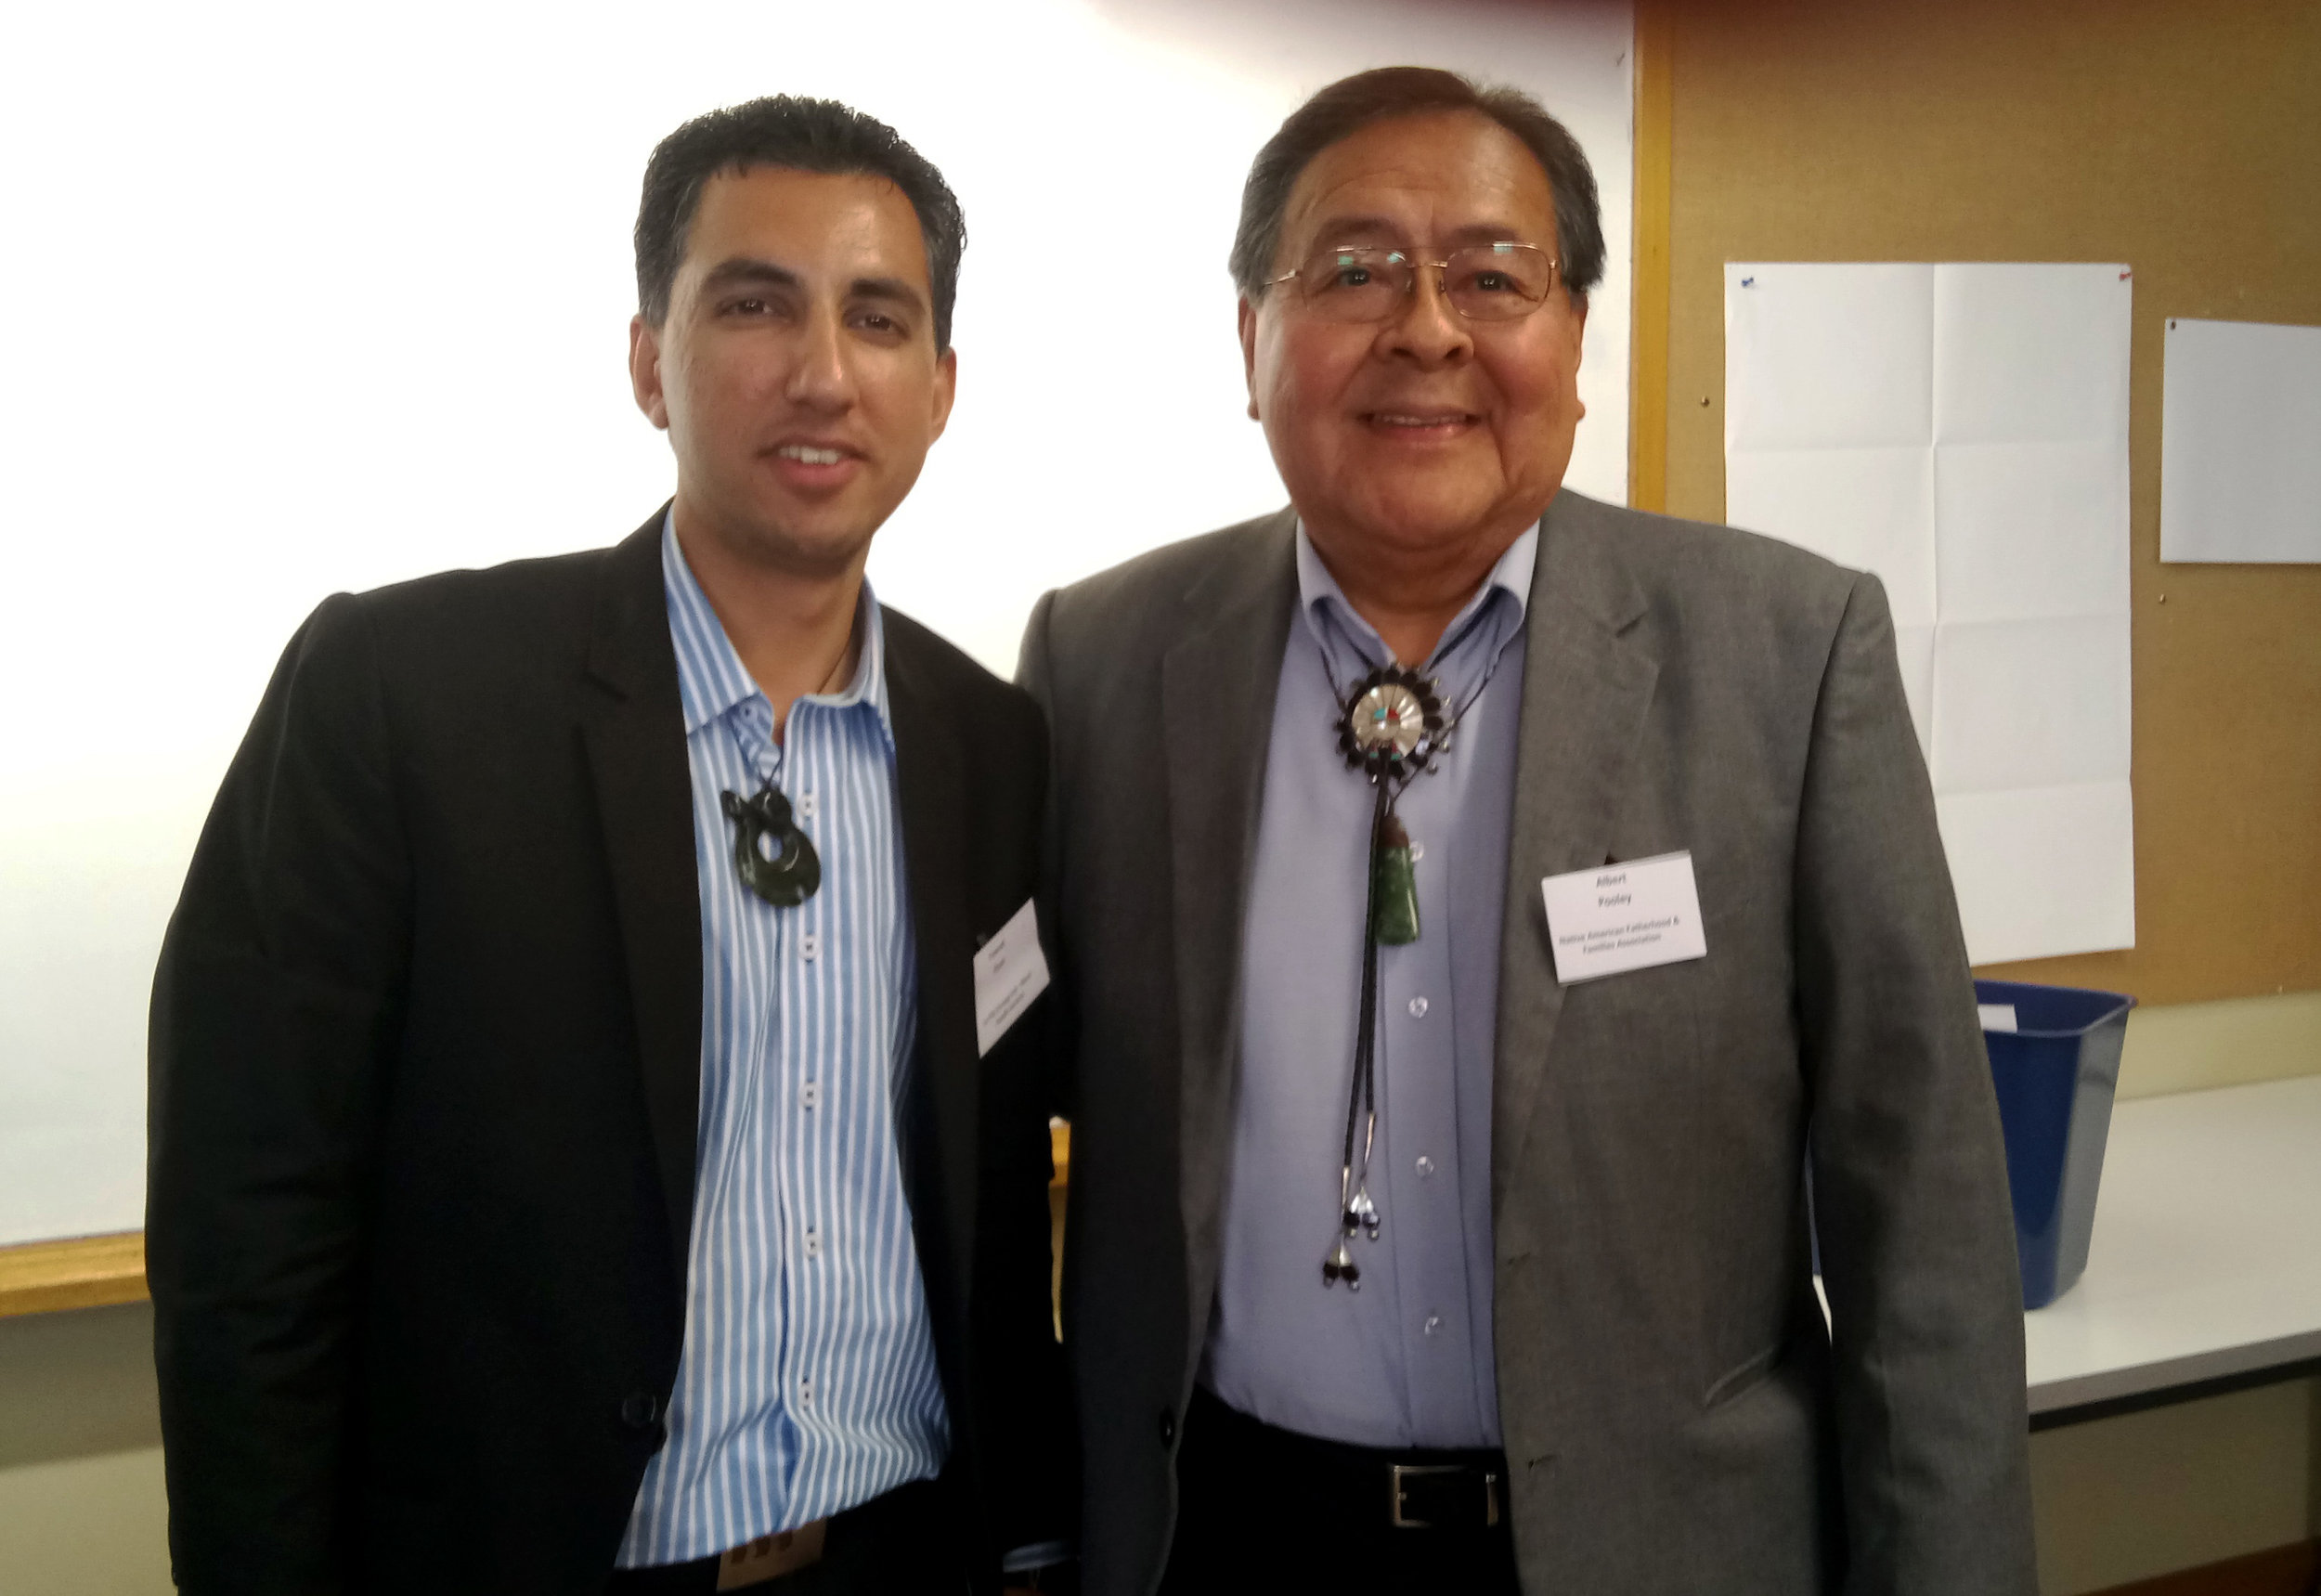 Fawad Shah with presenter Dr. Albert Pooley, Native American Family Therapist